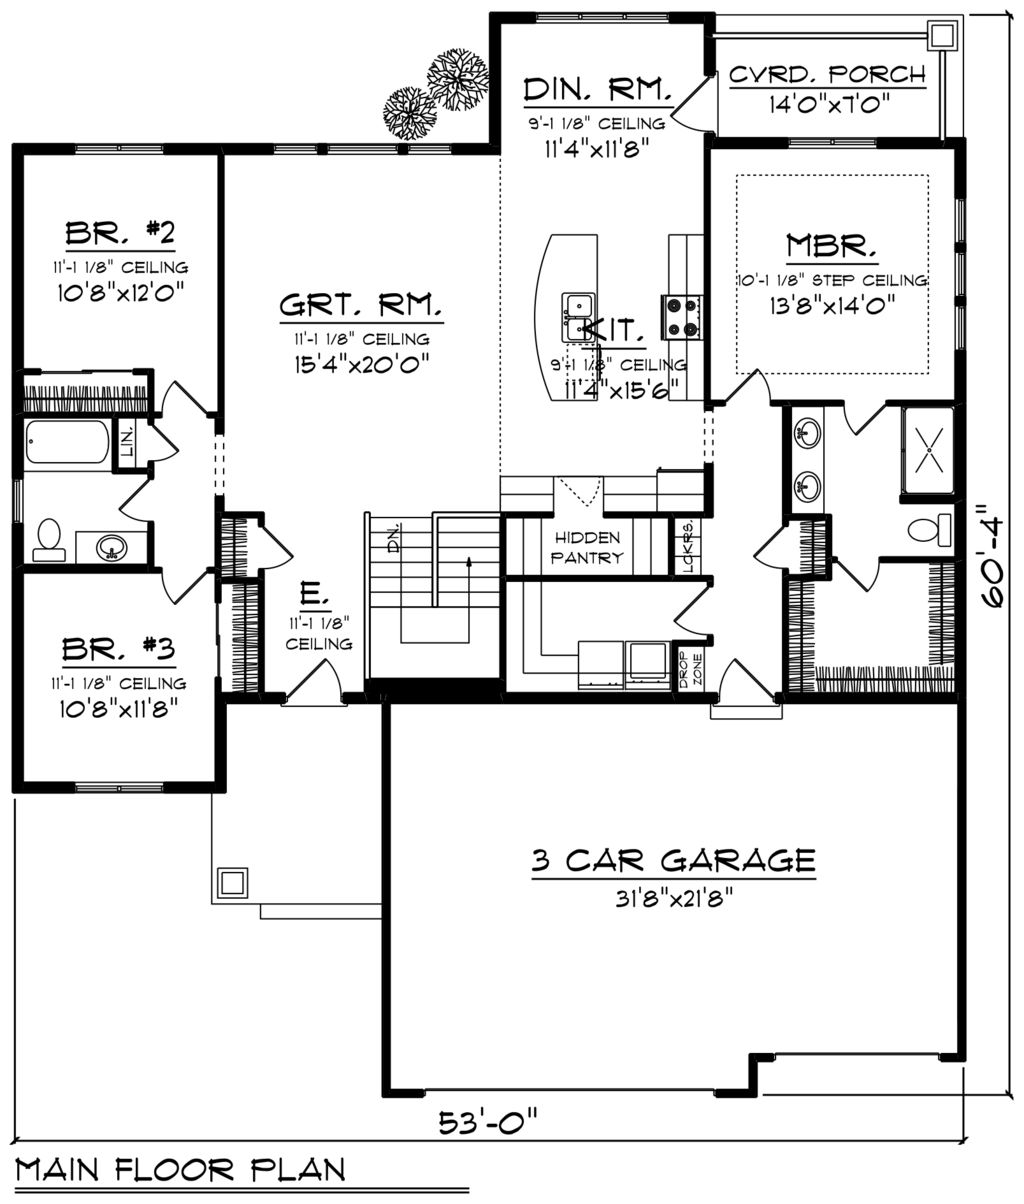 Ranch Style House Plan 3 Beds 2 Baths 1796 Sq Ft Plan 70 1243 Ranch Style House Plans Ranch House Plans Best House Plans